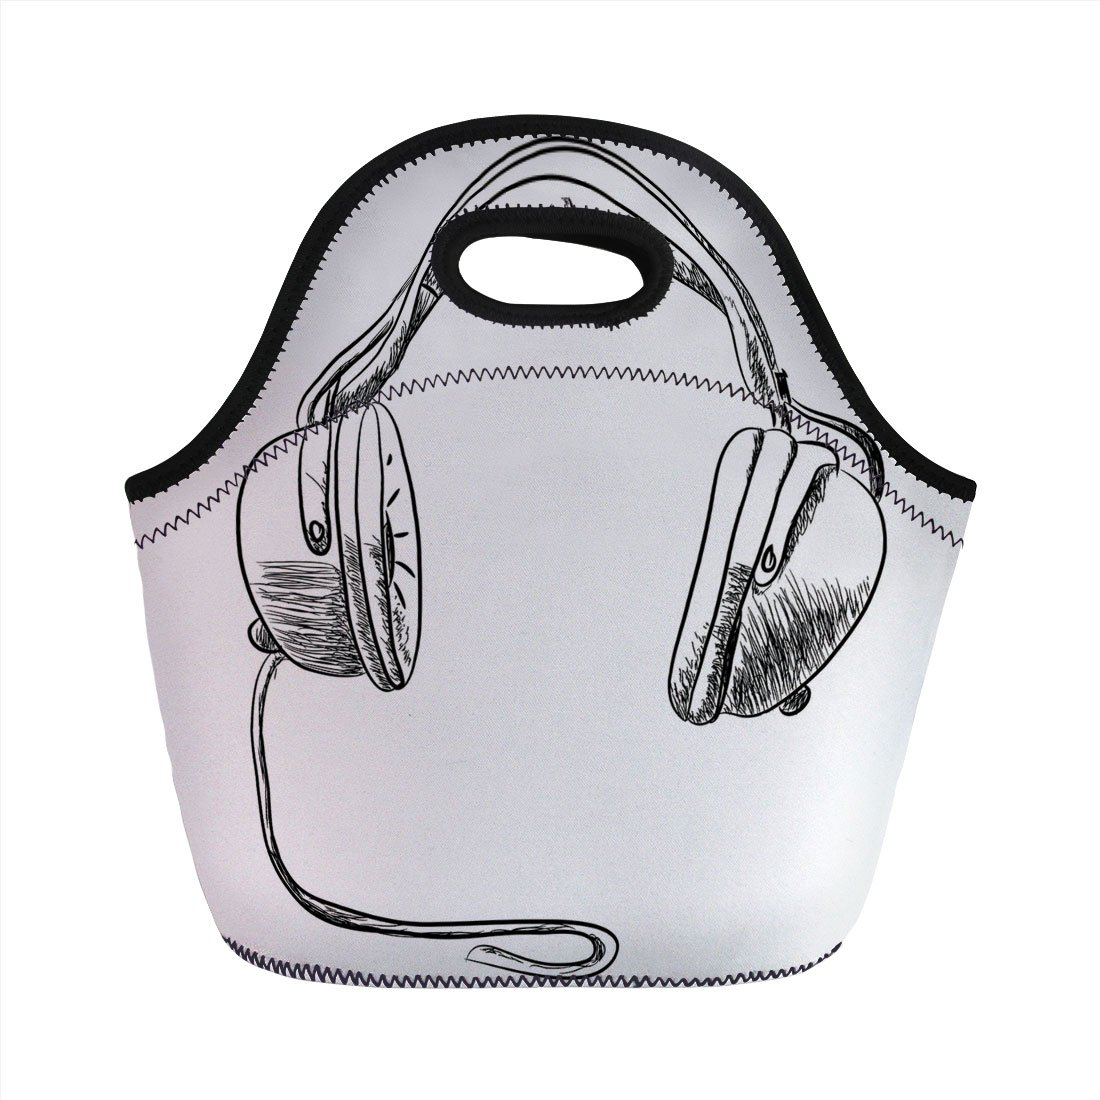 adfd5e9b3ed9 Amazon.com  Neoprene Lunch Bag